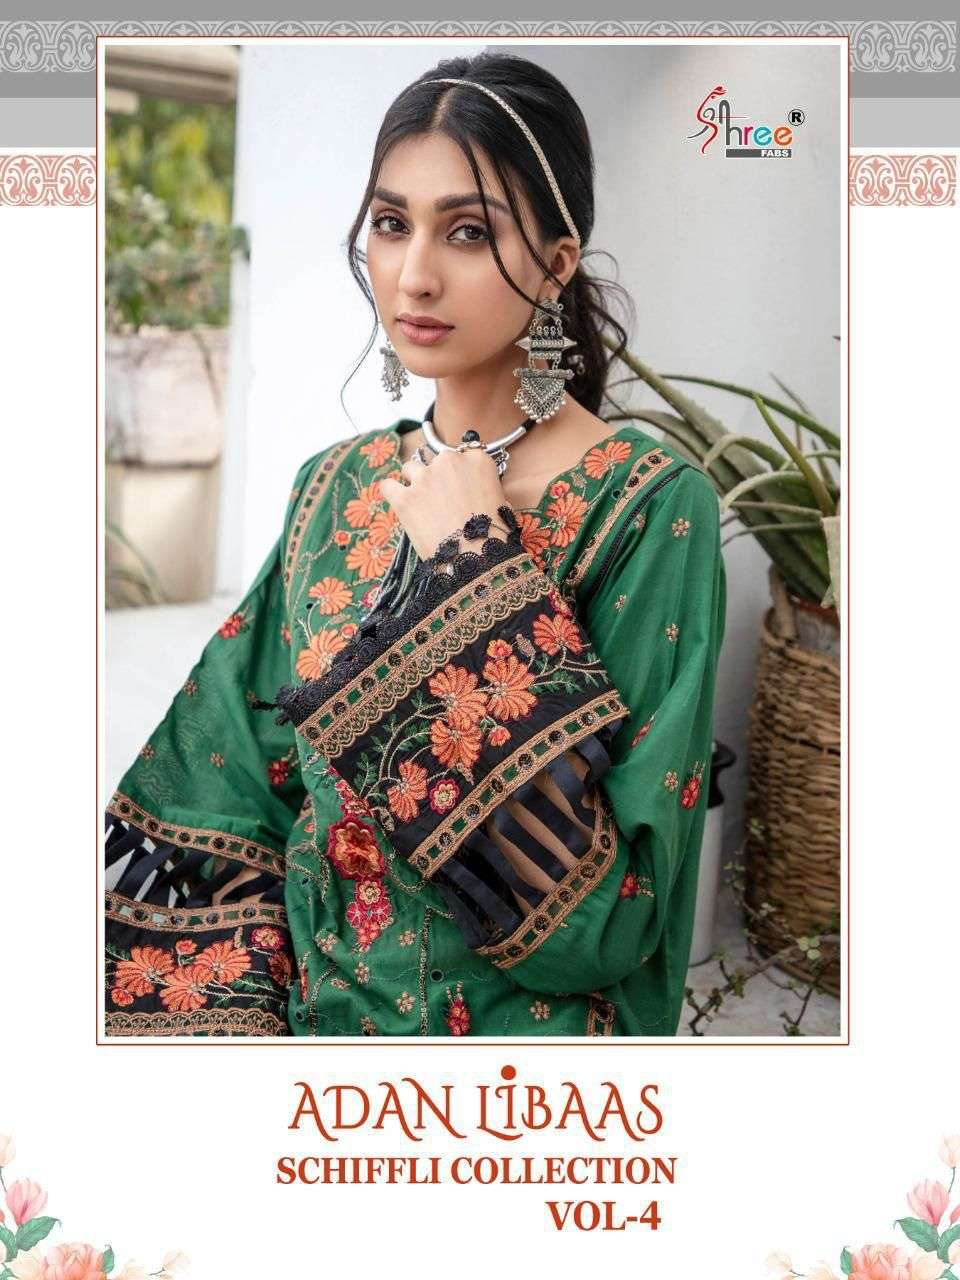 SHREE FAB ADNAN LIBAAS SCHIFFLI COLLECTION VOL 4 DESIGNER COTTON WITH EXCLUSIVE EMBROIDERY WORK PARTYWEAR PAKISTANI REPLICA SUITS WHOLESALE